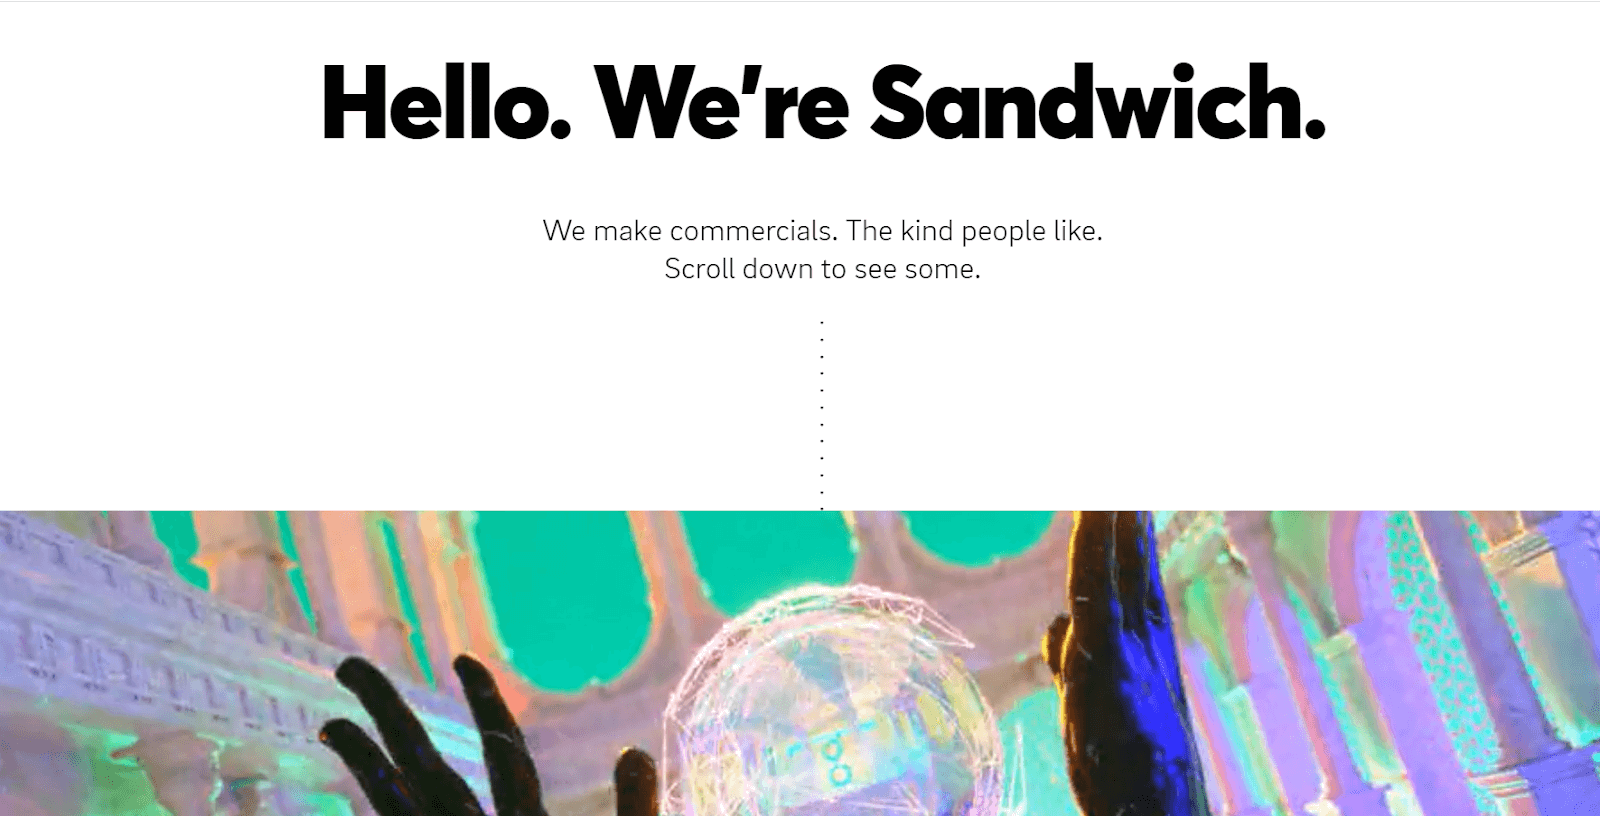 Sandwich homepage: Hello. We're Sandwich. We make commercials. The kind people like. Scroll down to see more.